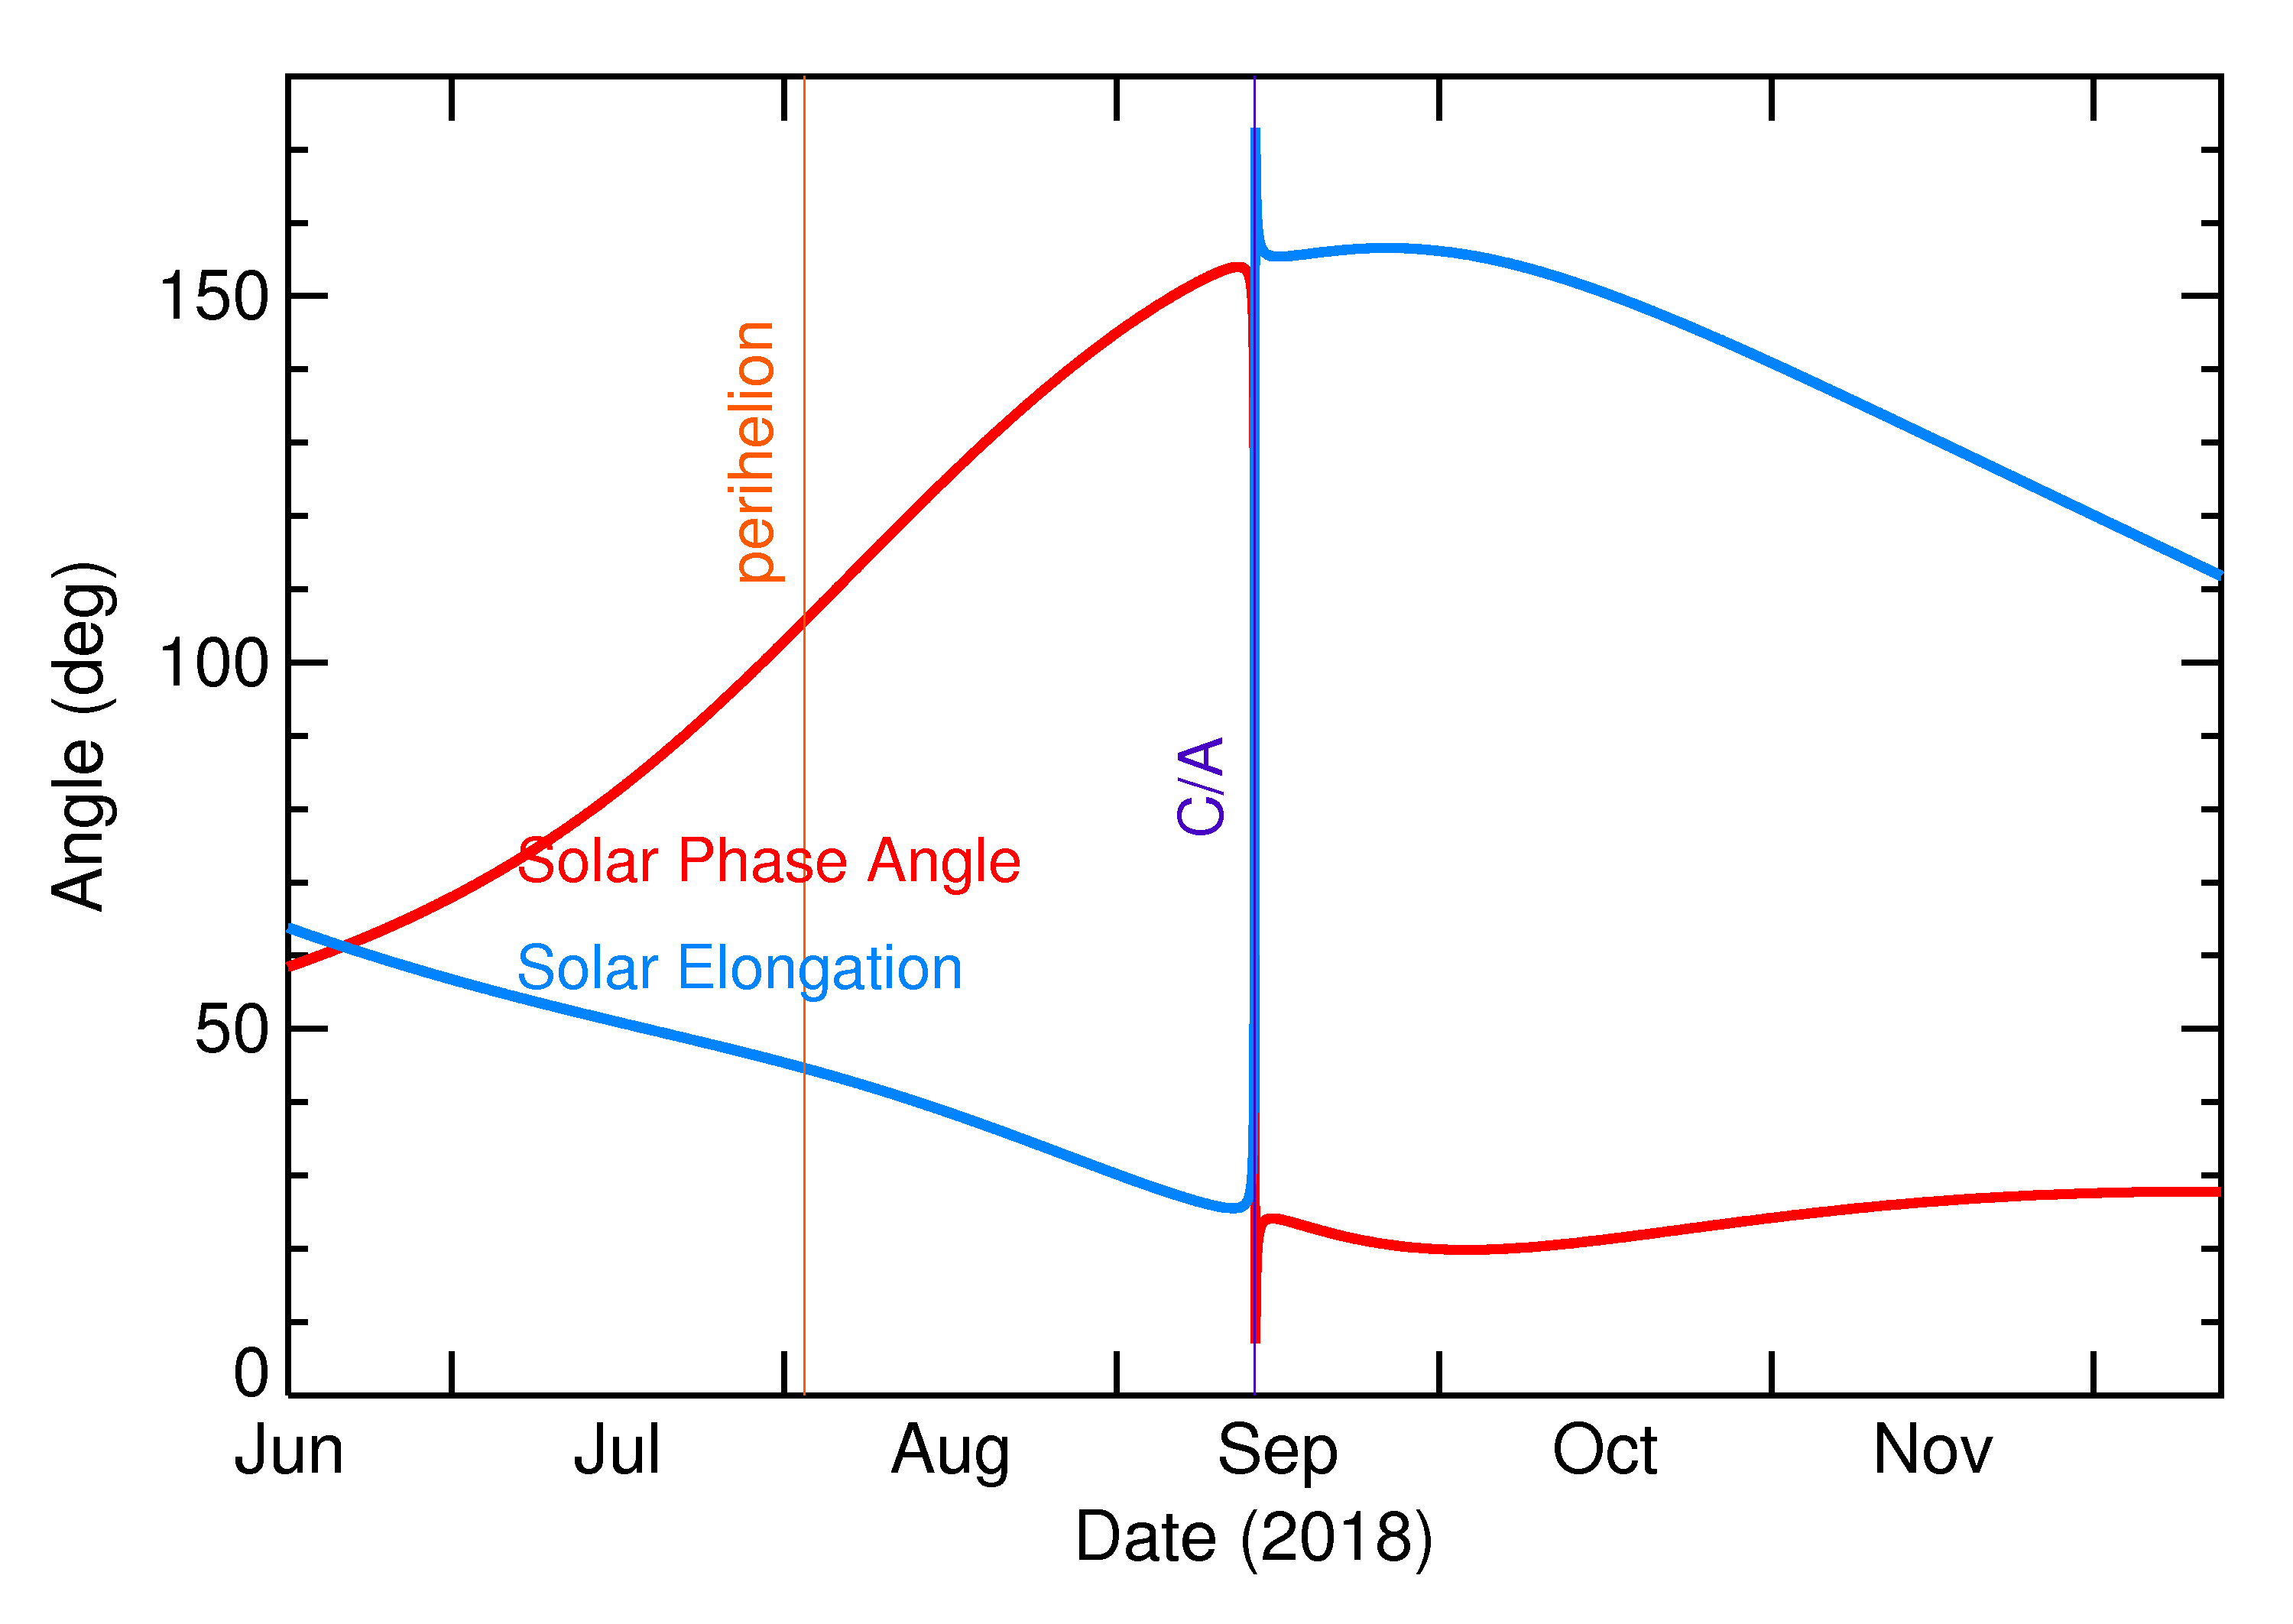 Solar Elongation and Solar Phase Angle of 2018 RZ5 in the months around closest approach